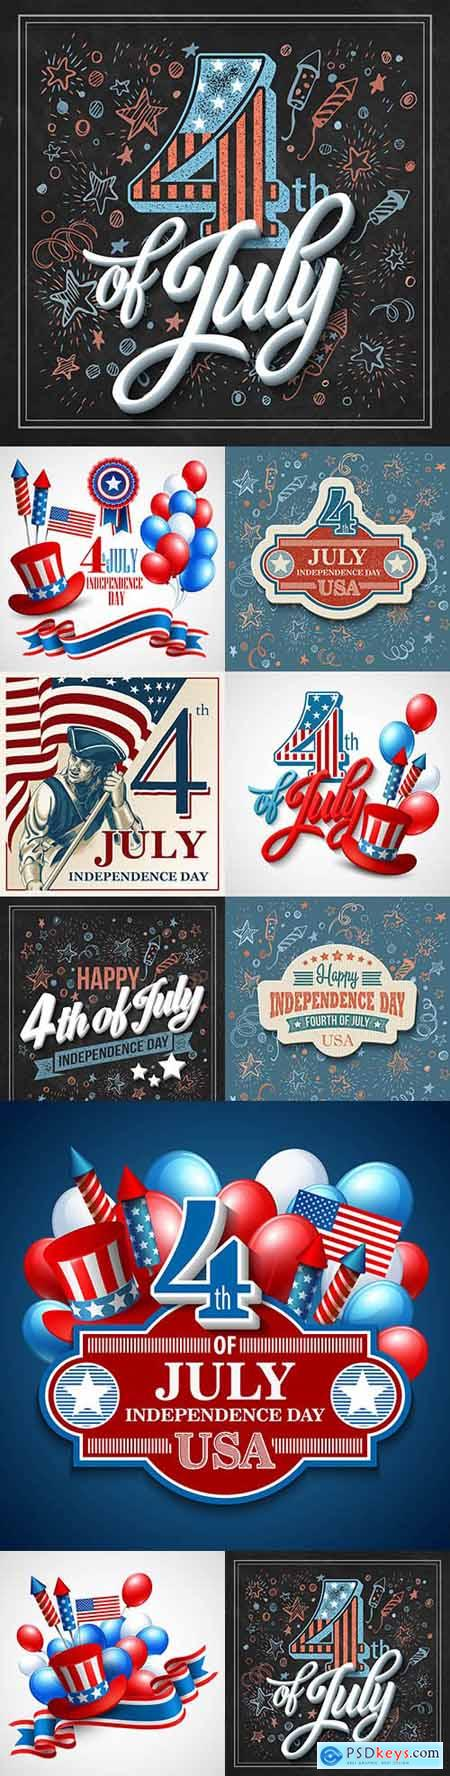 July 4 Independence Day America design illustrations